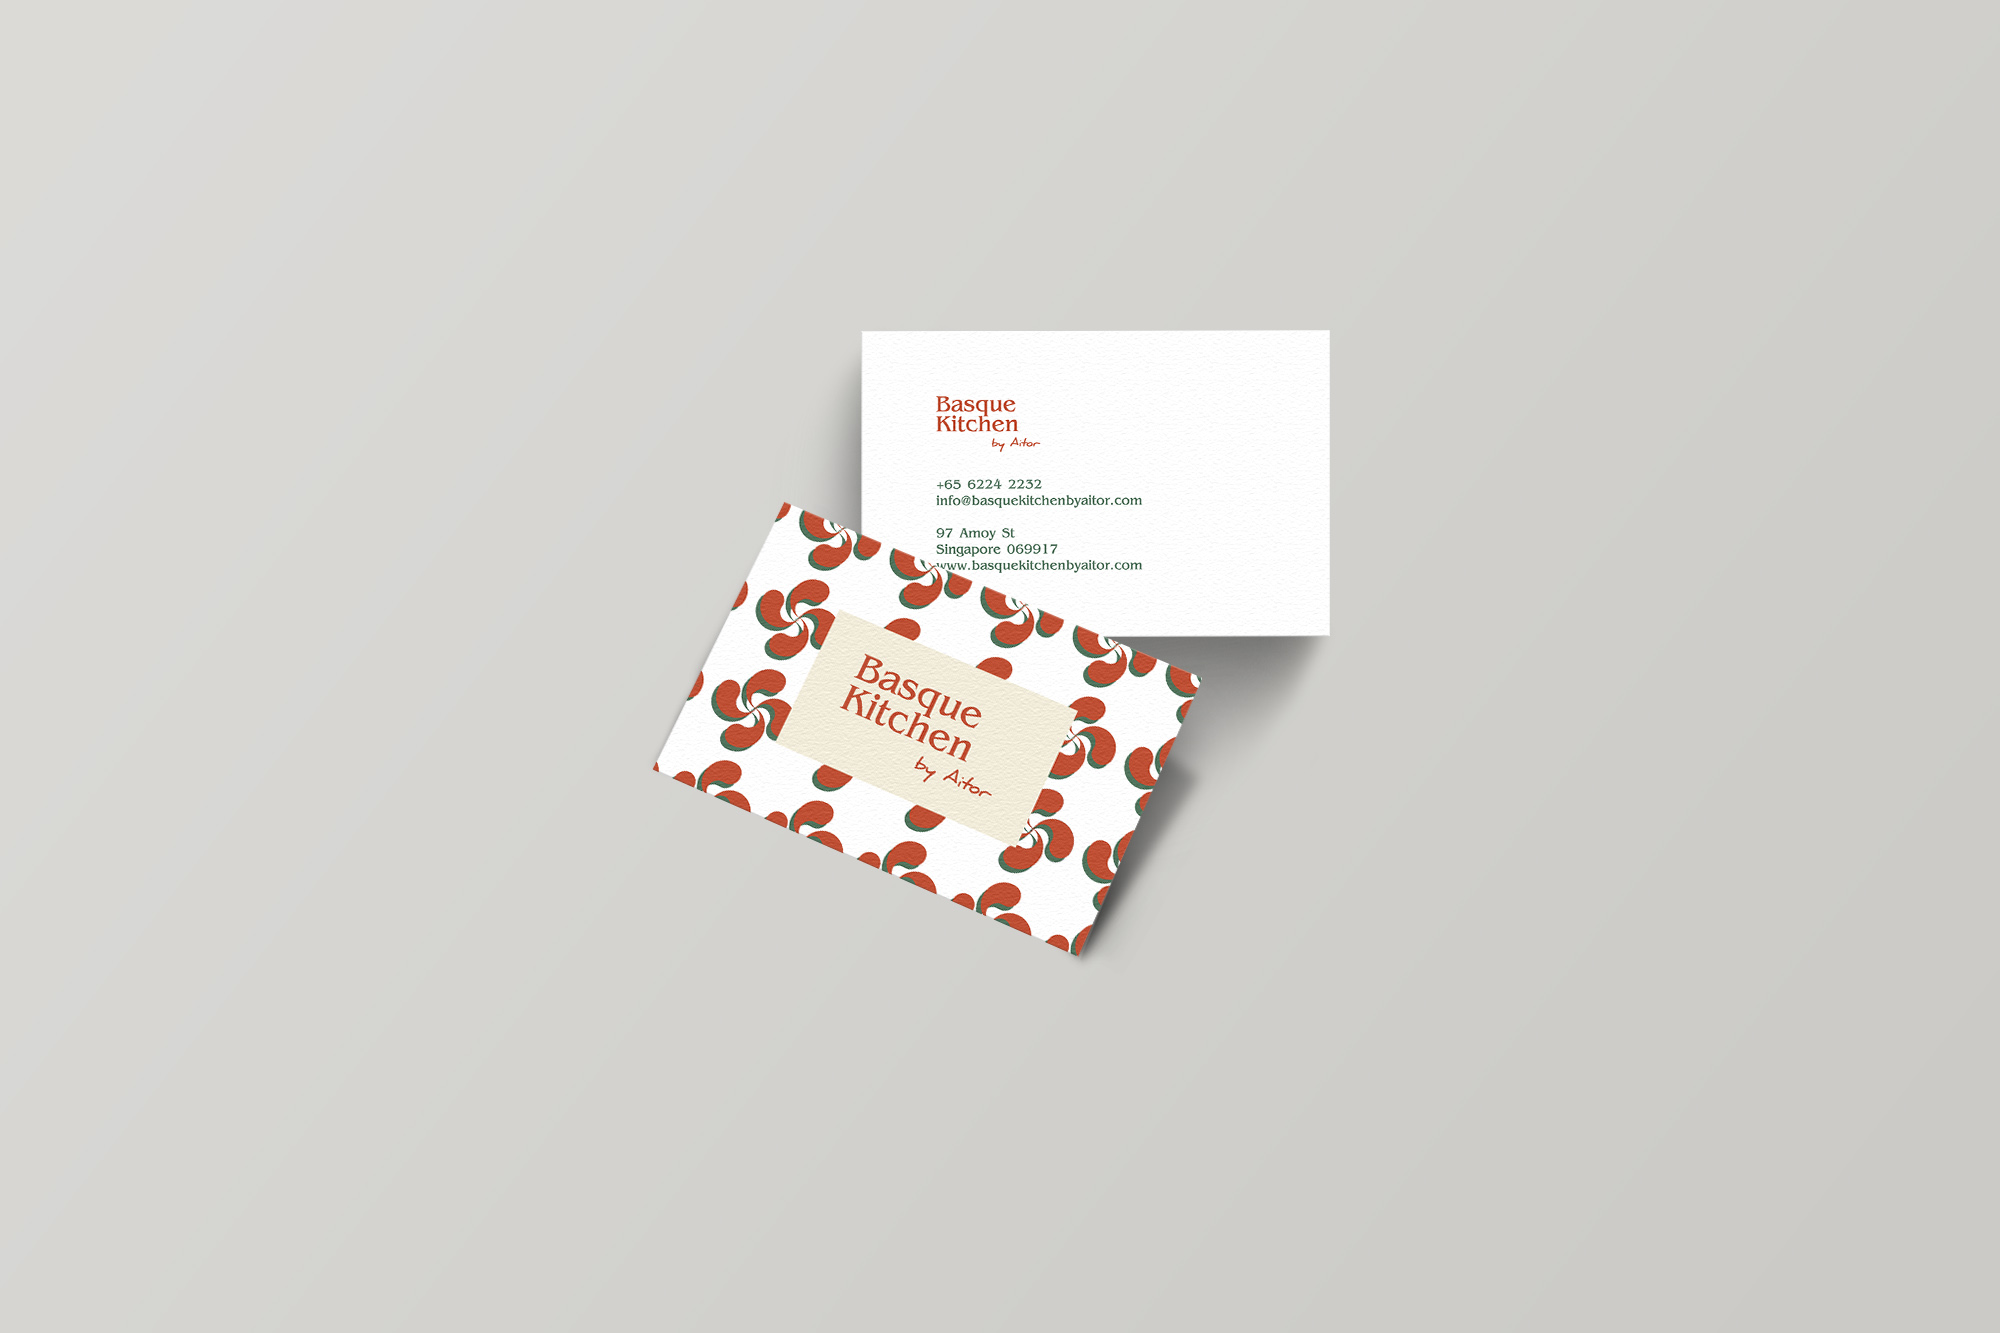 Business Card Mockup.jpg